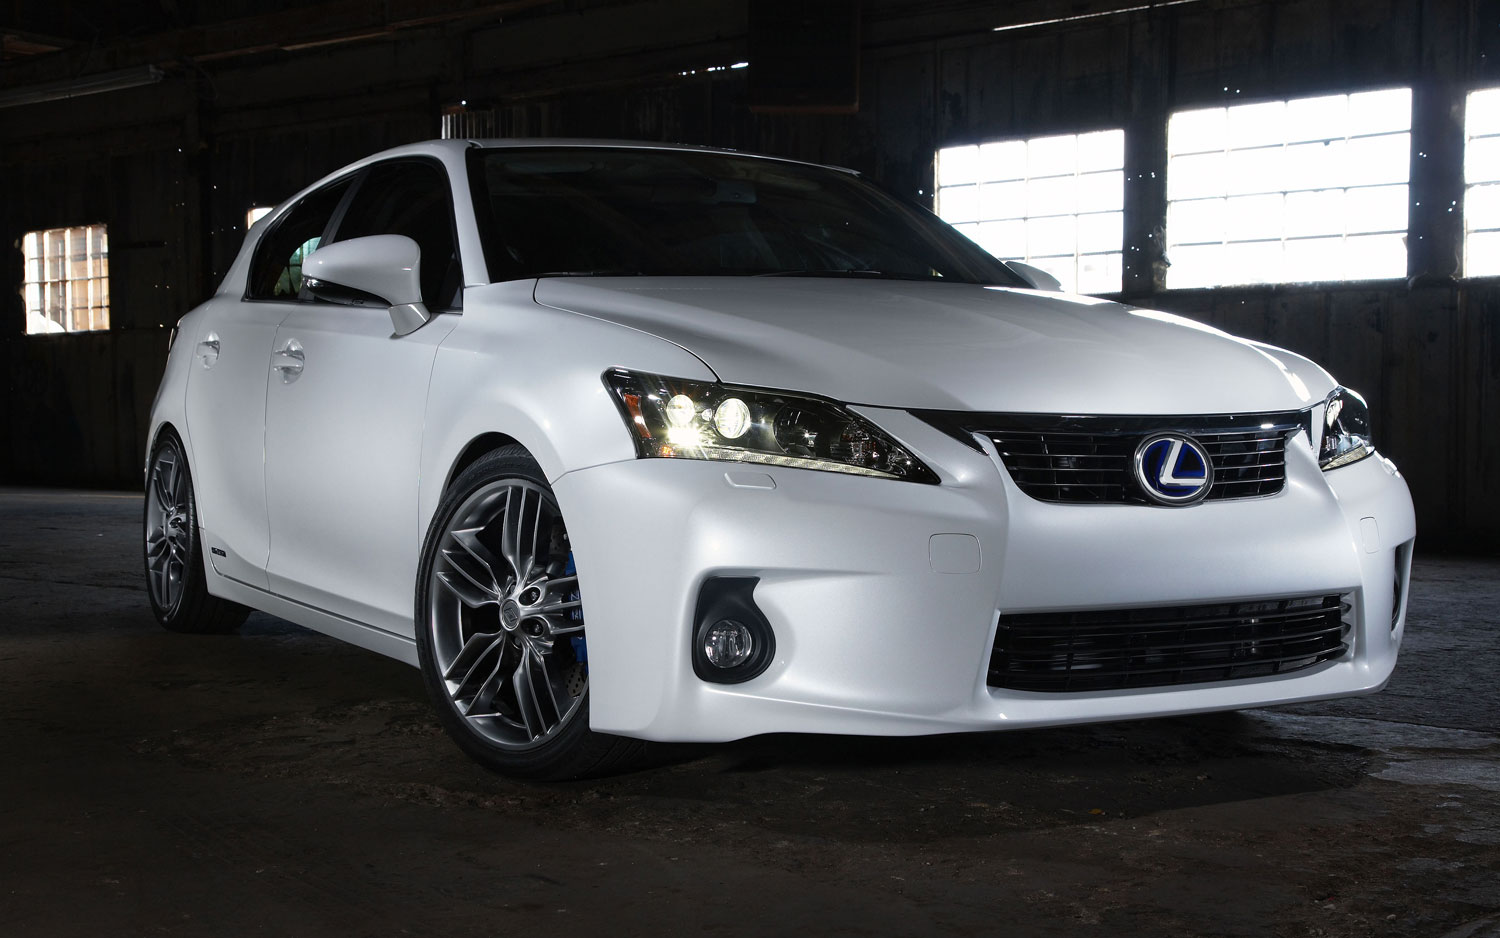 2012 Lexus CT 200h Gets New Alert System And F Sport Option; Rest Of Lexus  Lineup Are Carryovers